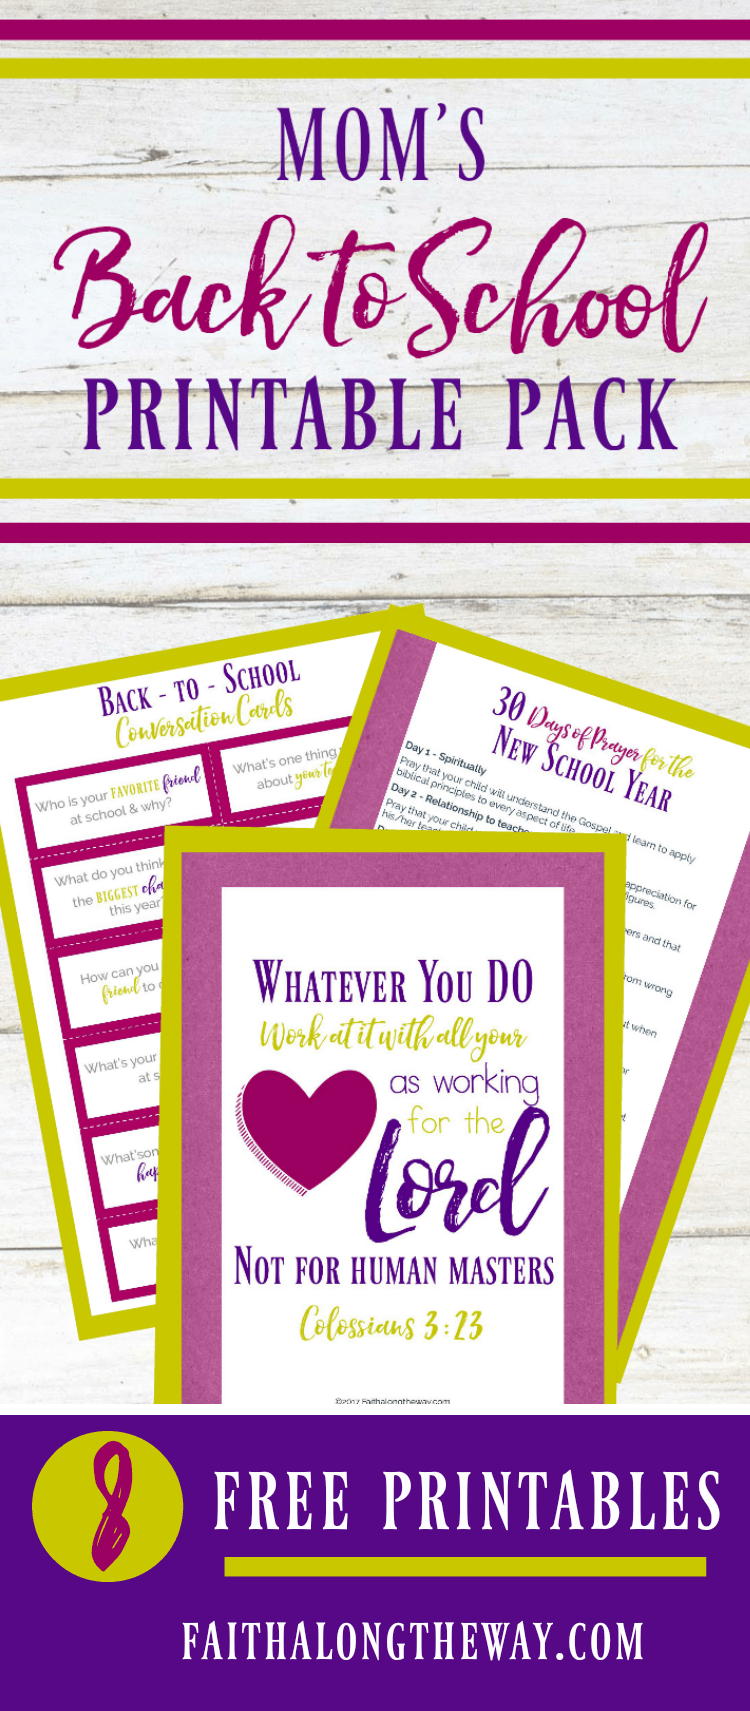 It's almost time for back to school! Make the transition to a school routine simple and easy with Mom's Back to School Printable Pack! Plus, the 30 Days of Prayer for the New School Year printables included will help you prepare your child's heart for the journey ahead.